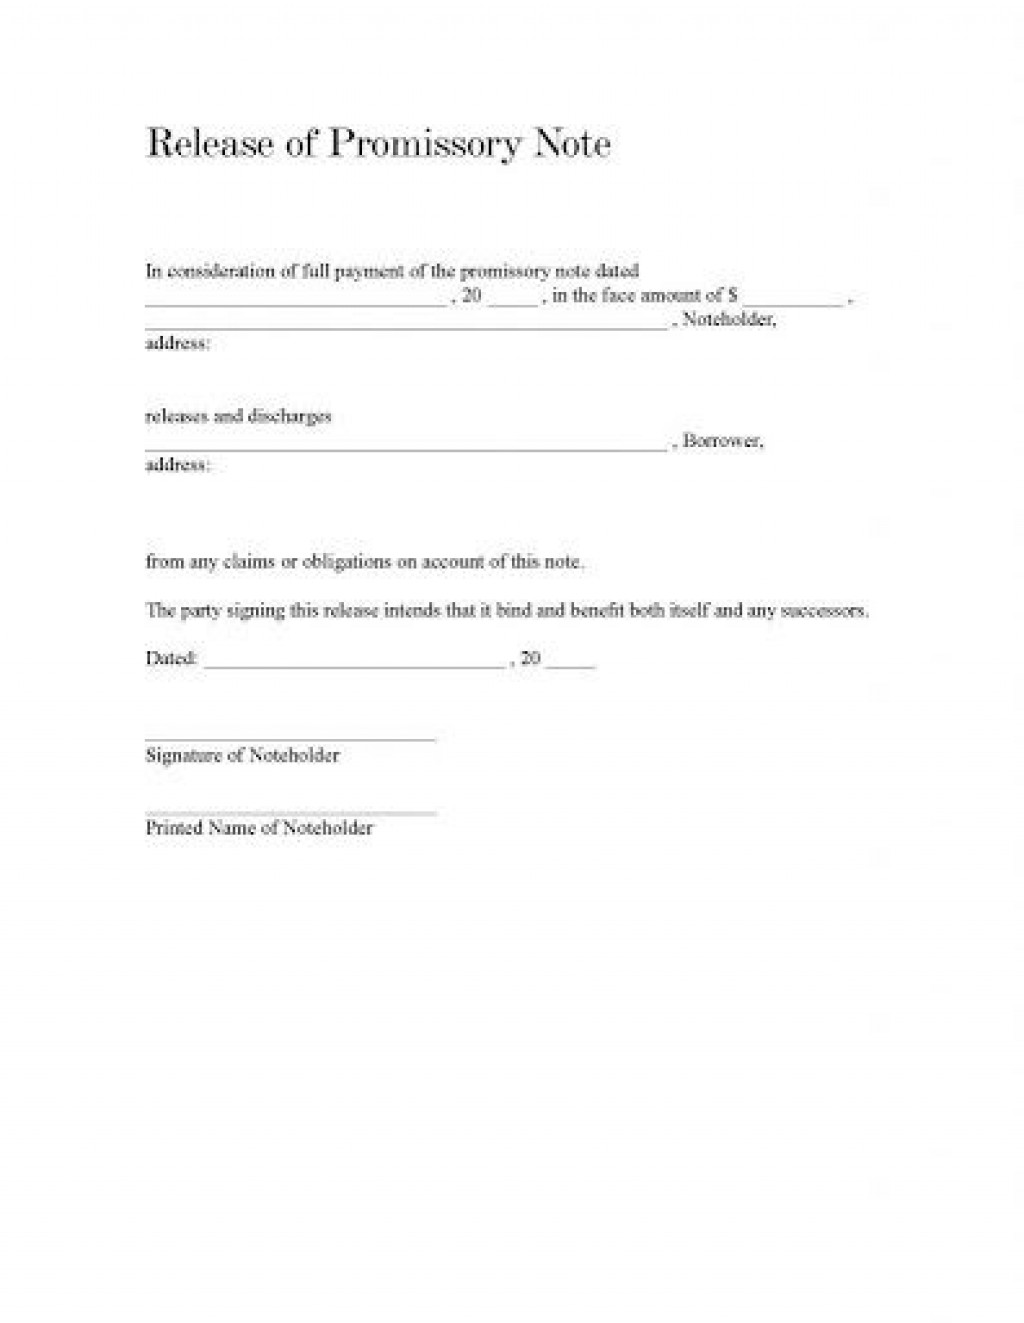 009 Best Loan Promissory Note Template Concept  Ppp Form Personal Format StudentLarge